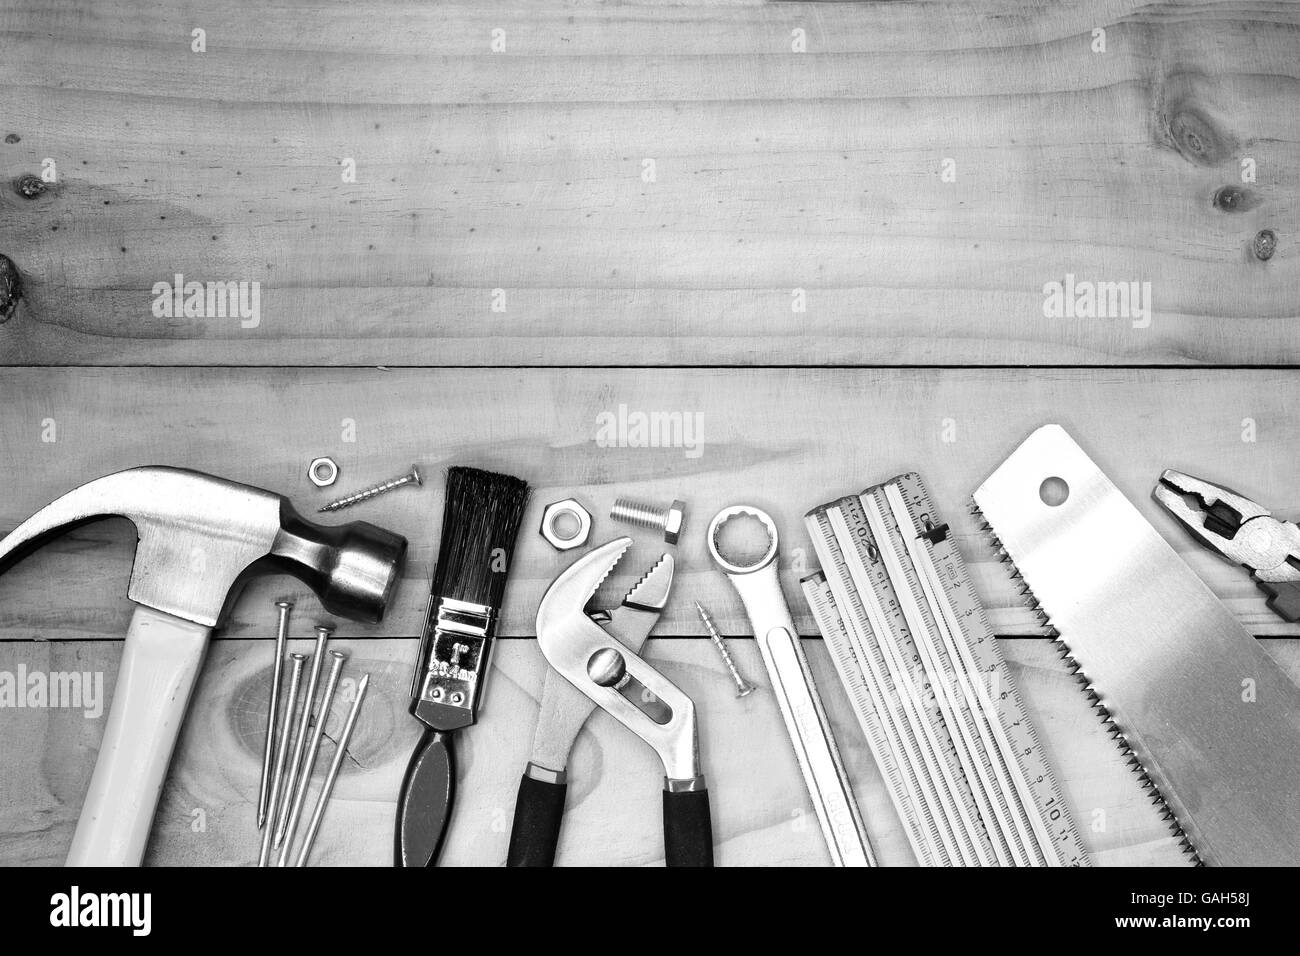 Assorted work tools on wood - Stock Image